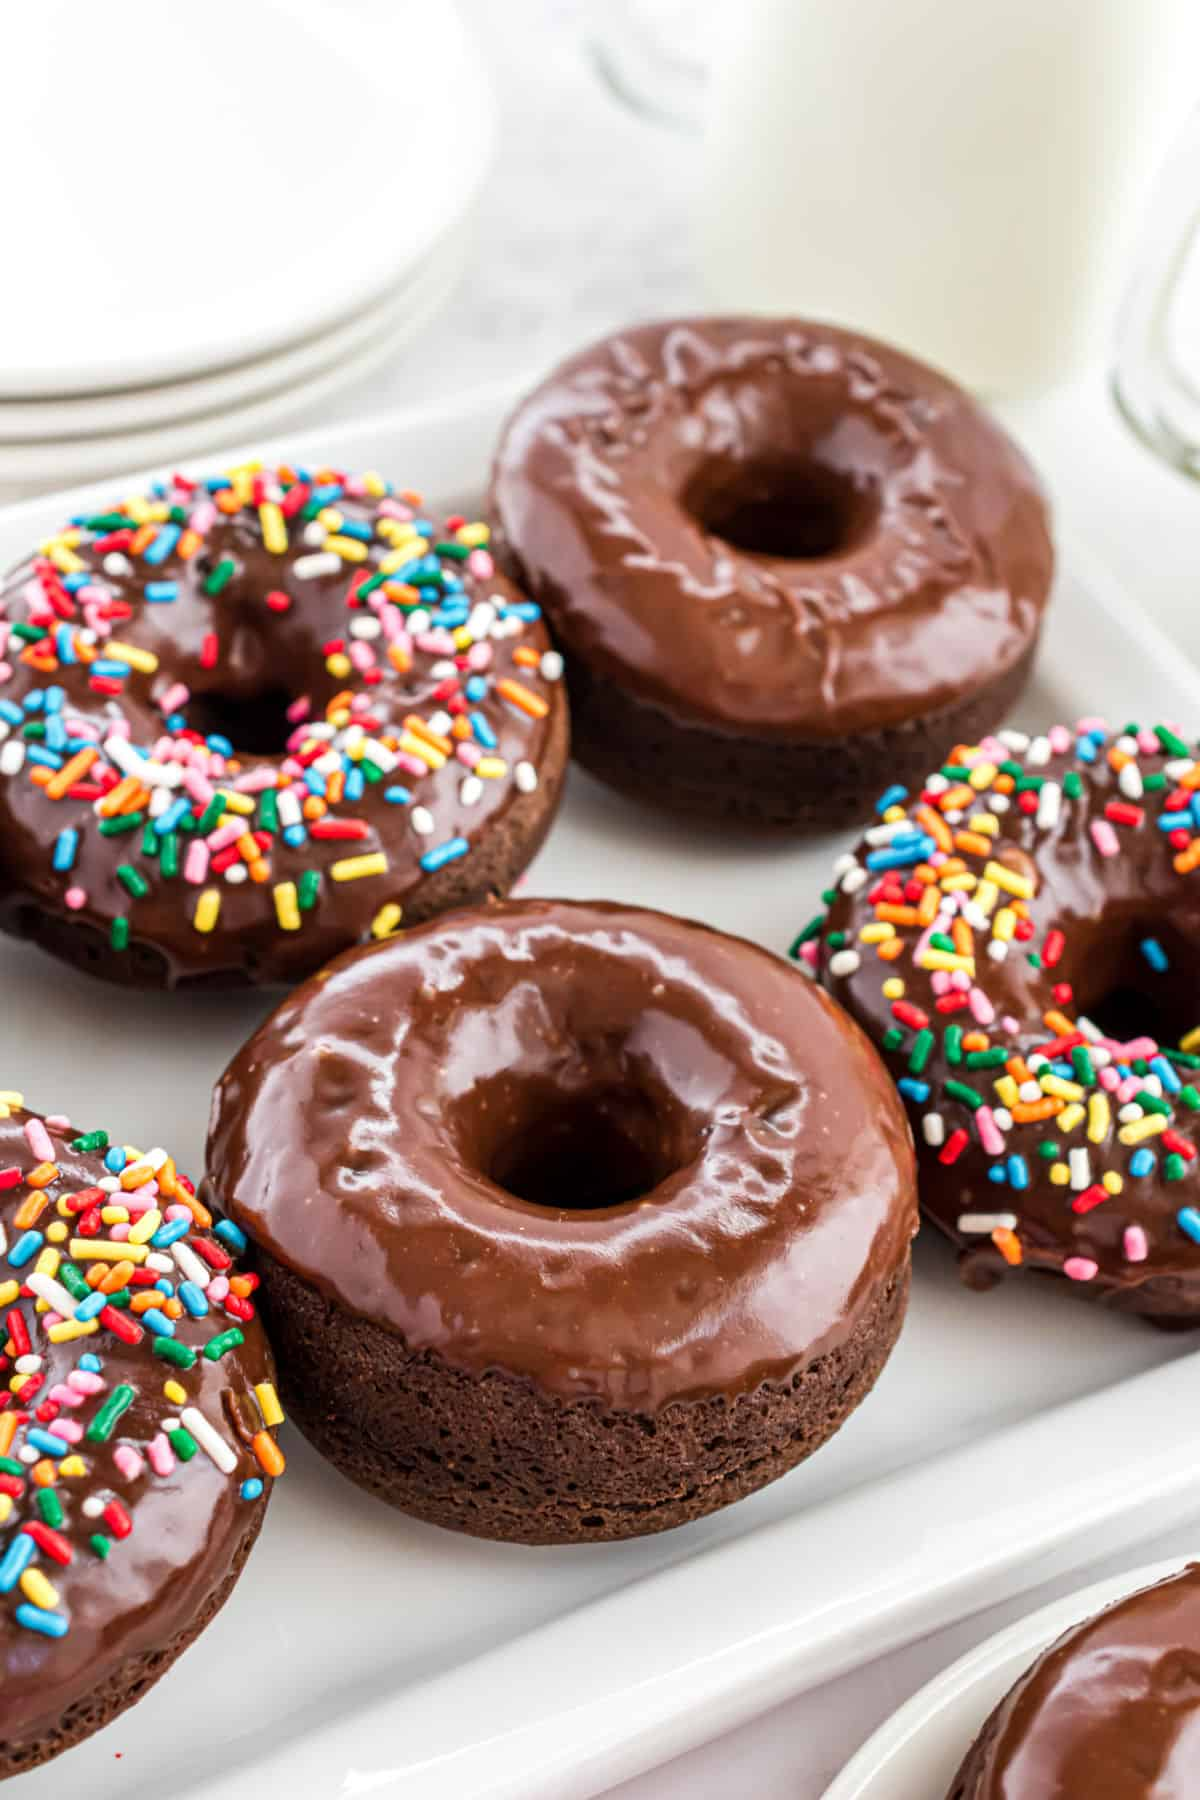 Chocolate glazed donuts on a white plate.